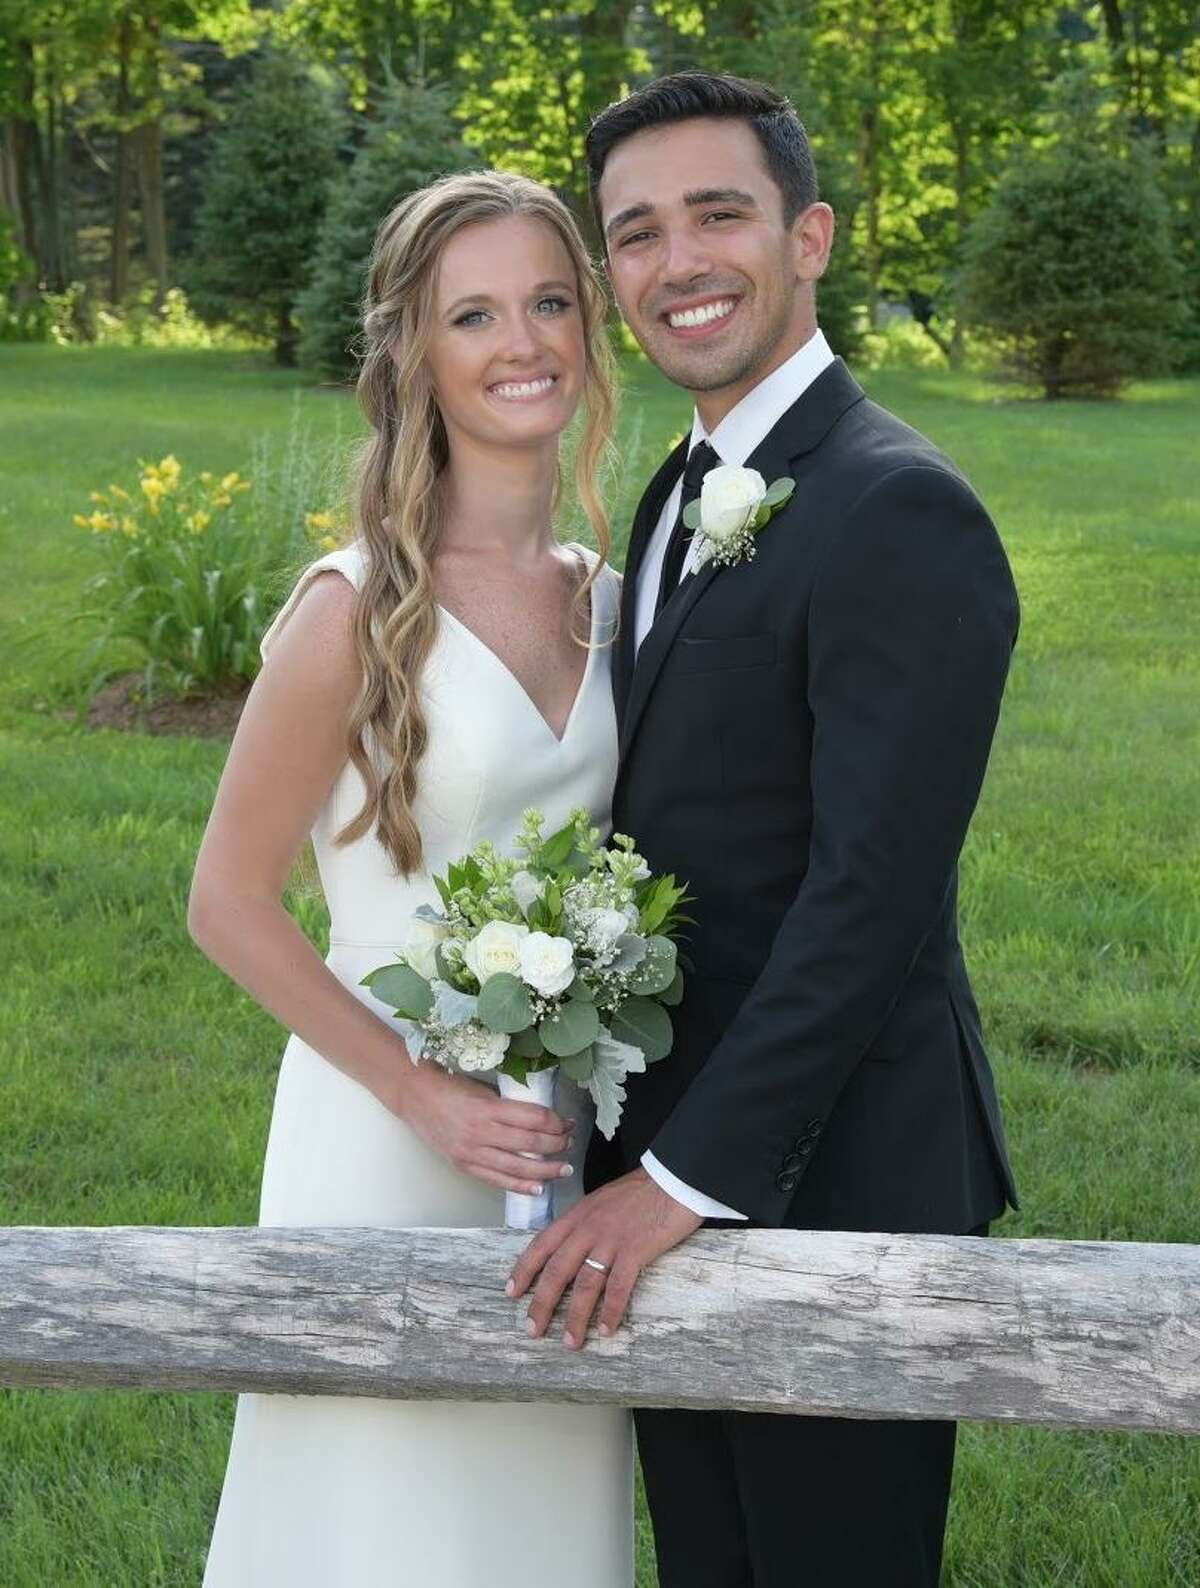 Allie Blum and John Laychak got married on July 5, 2020 in the Berkshires.